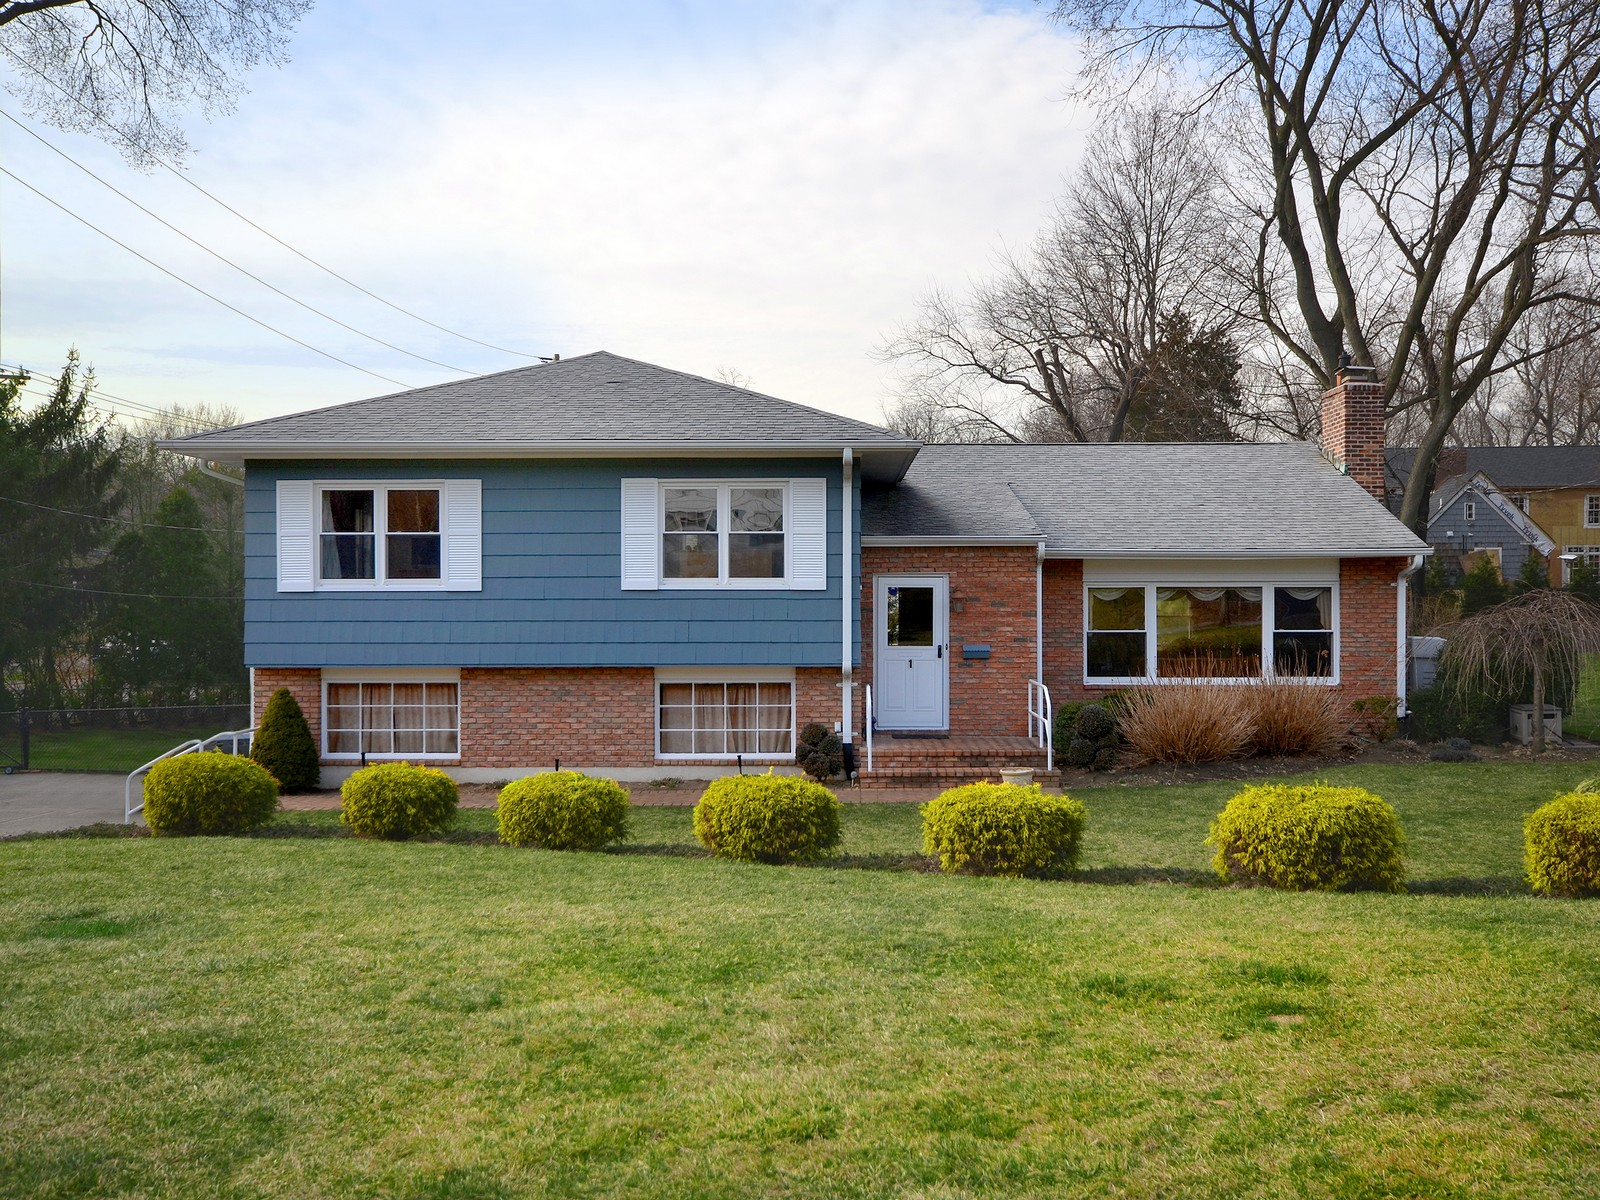 Single Family Home for Sale at Split 1 East View Ct Port Washington, New York, 11050 United States